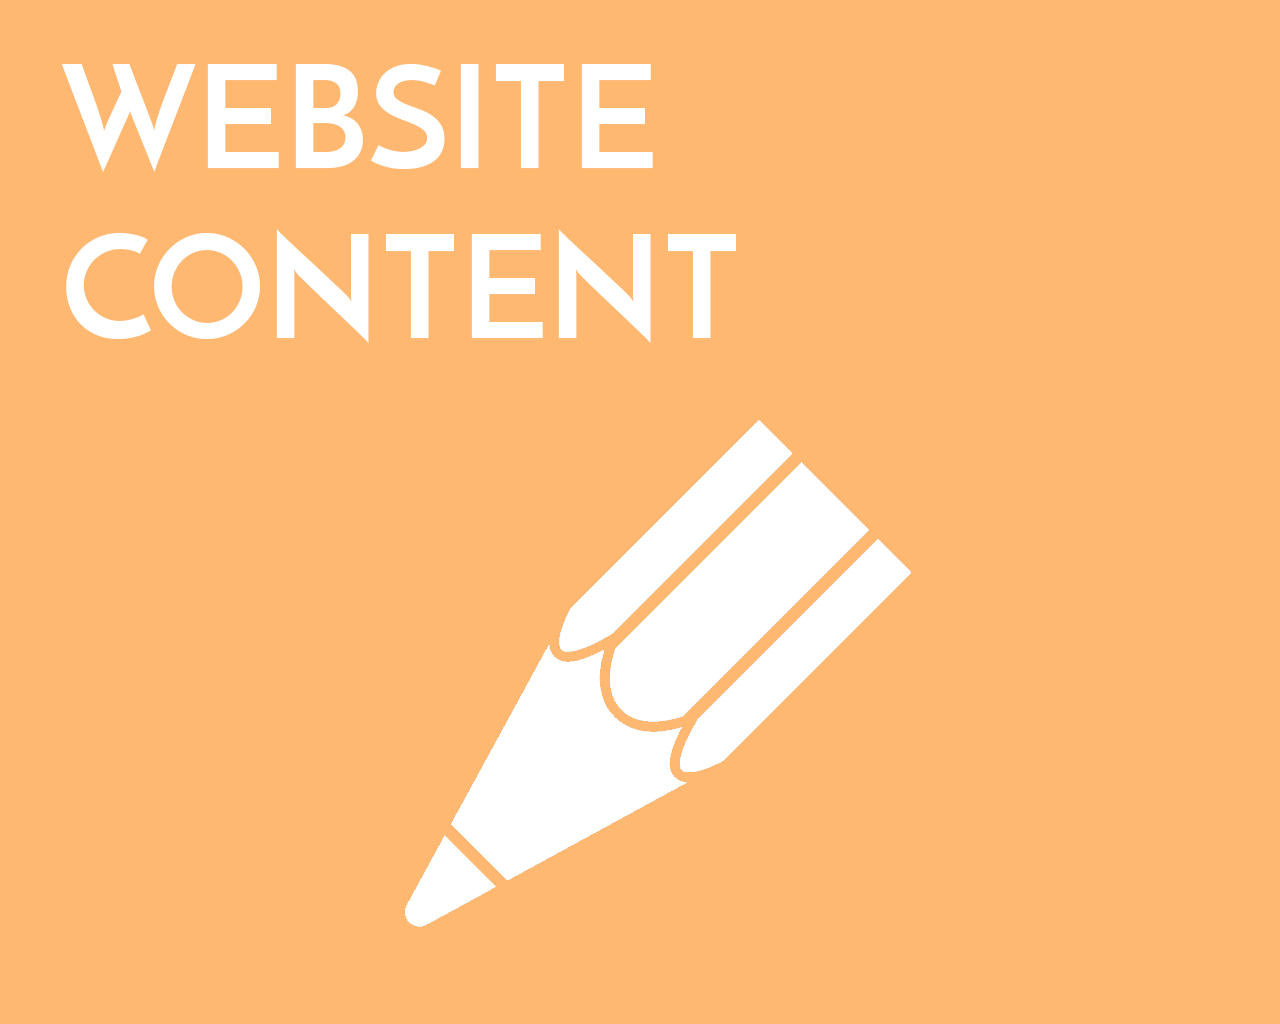 Writing content for websites